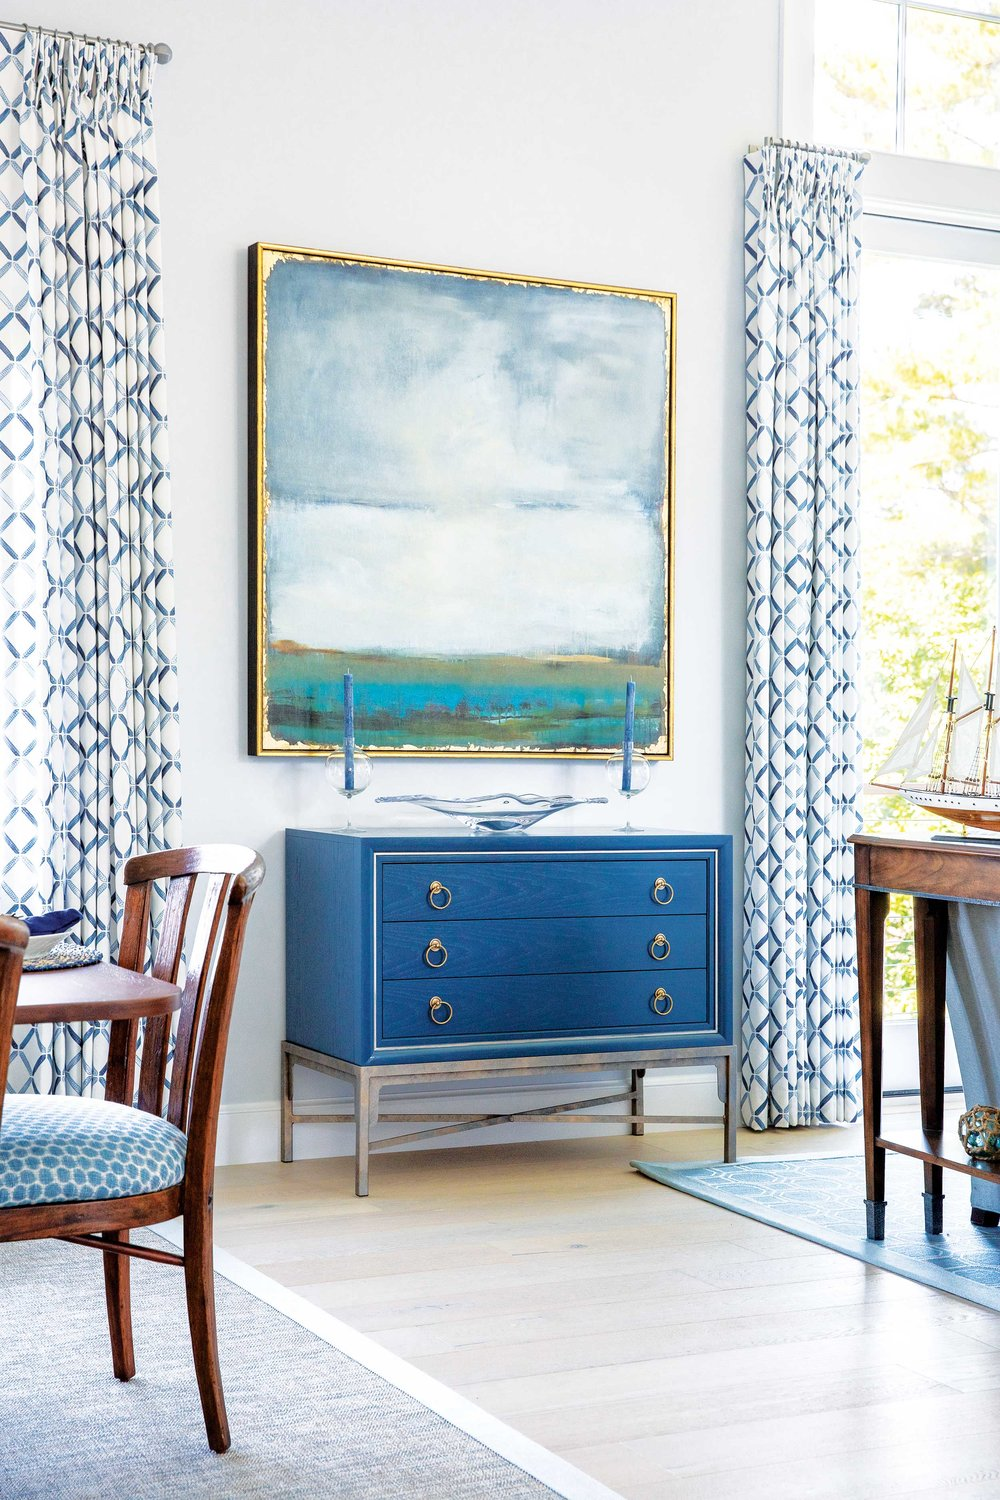 Ms. Hurlbutt's eye looks always to augment tradition. An impressionistic skyscape evokes a light summer storm, while the welded legs of a three-drawer chest inject an industrial bent.